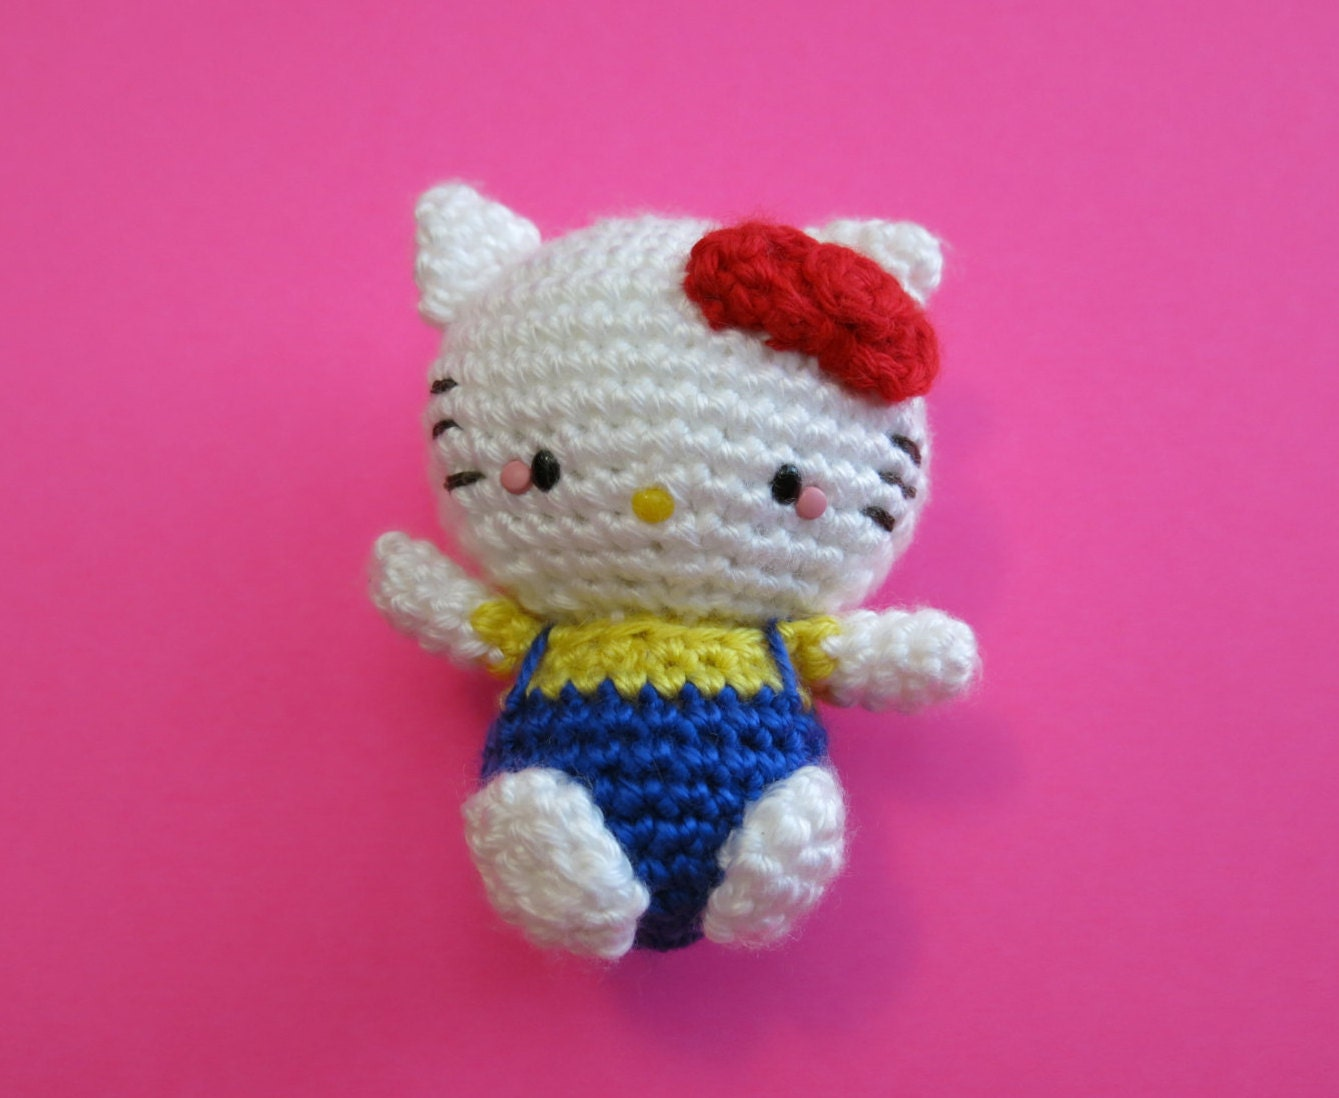 Crochet Hello Kitty Amigurumi Doll